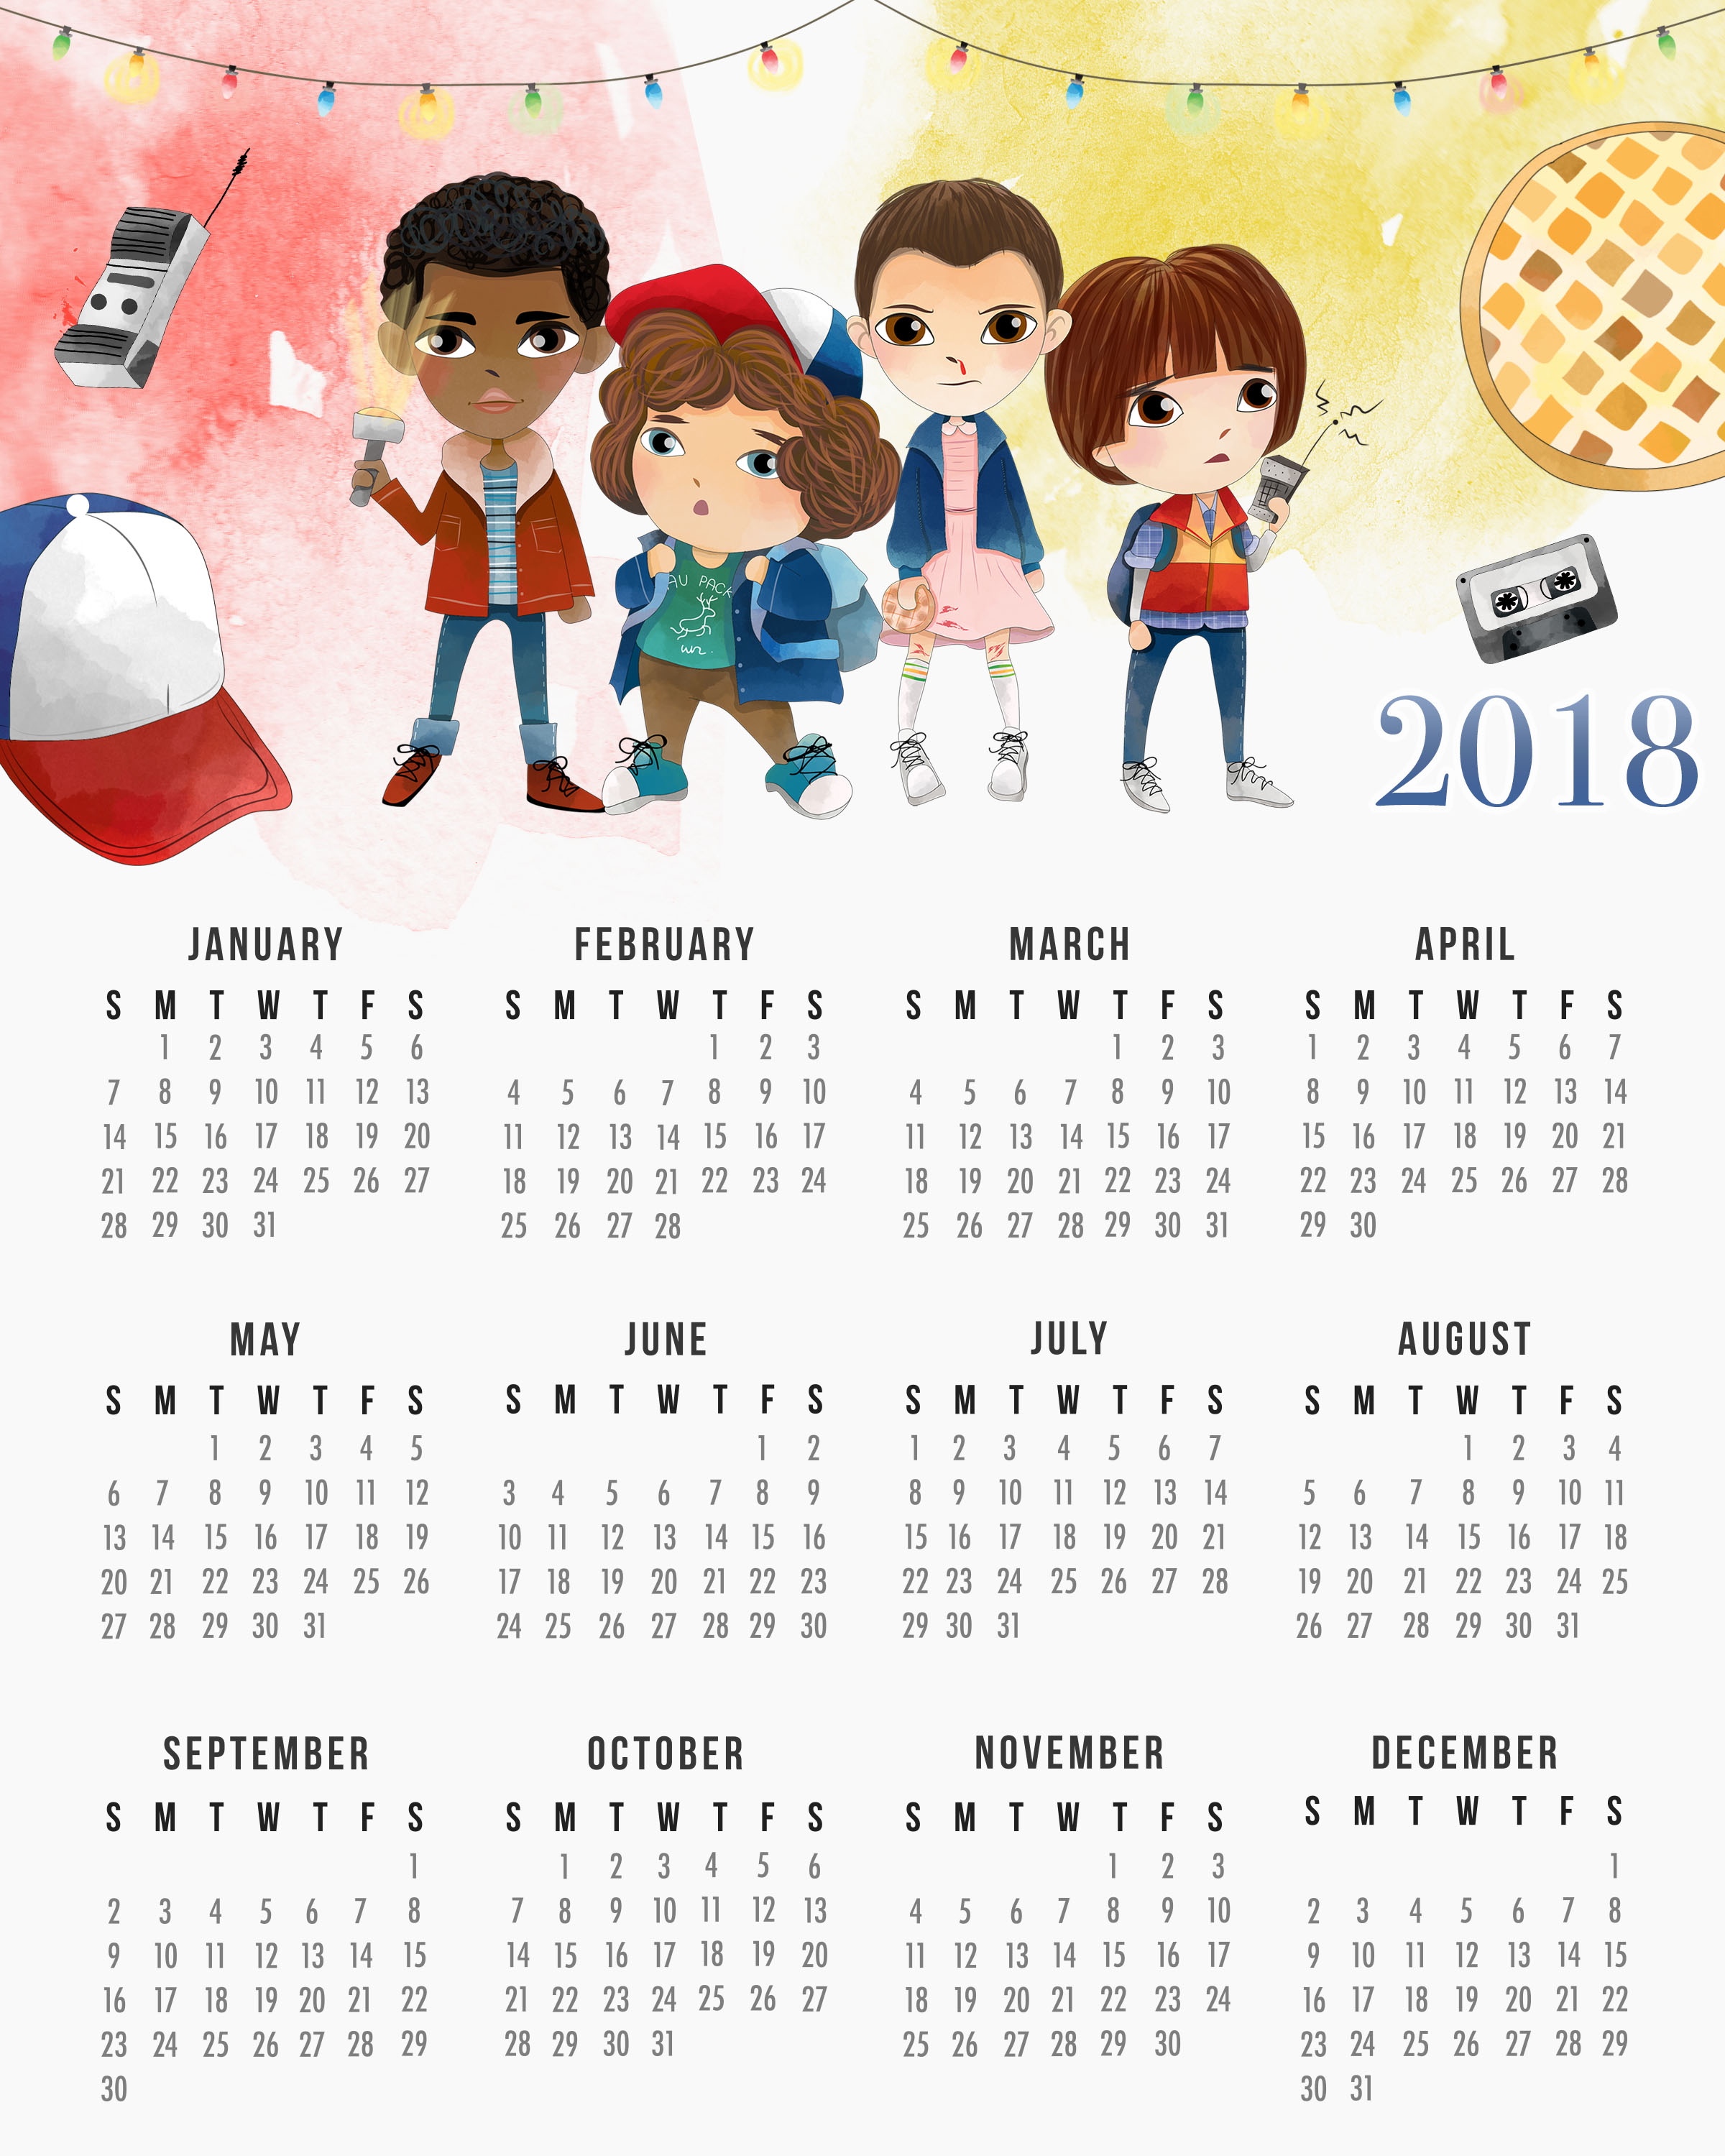 This free Stranger Things 2018 calendar will look great hanging up in your kid's room!